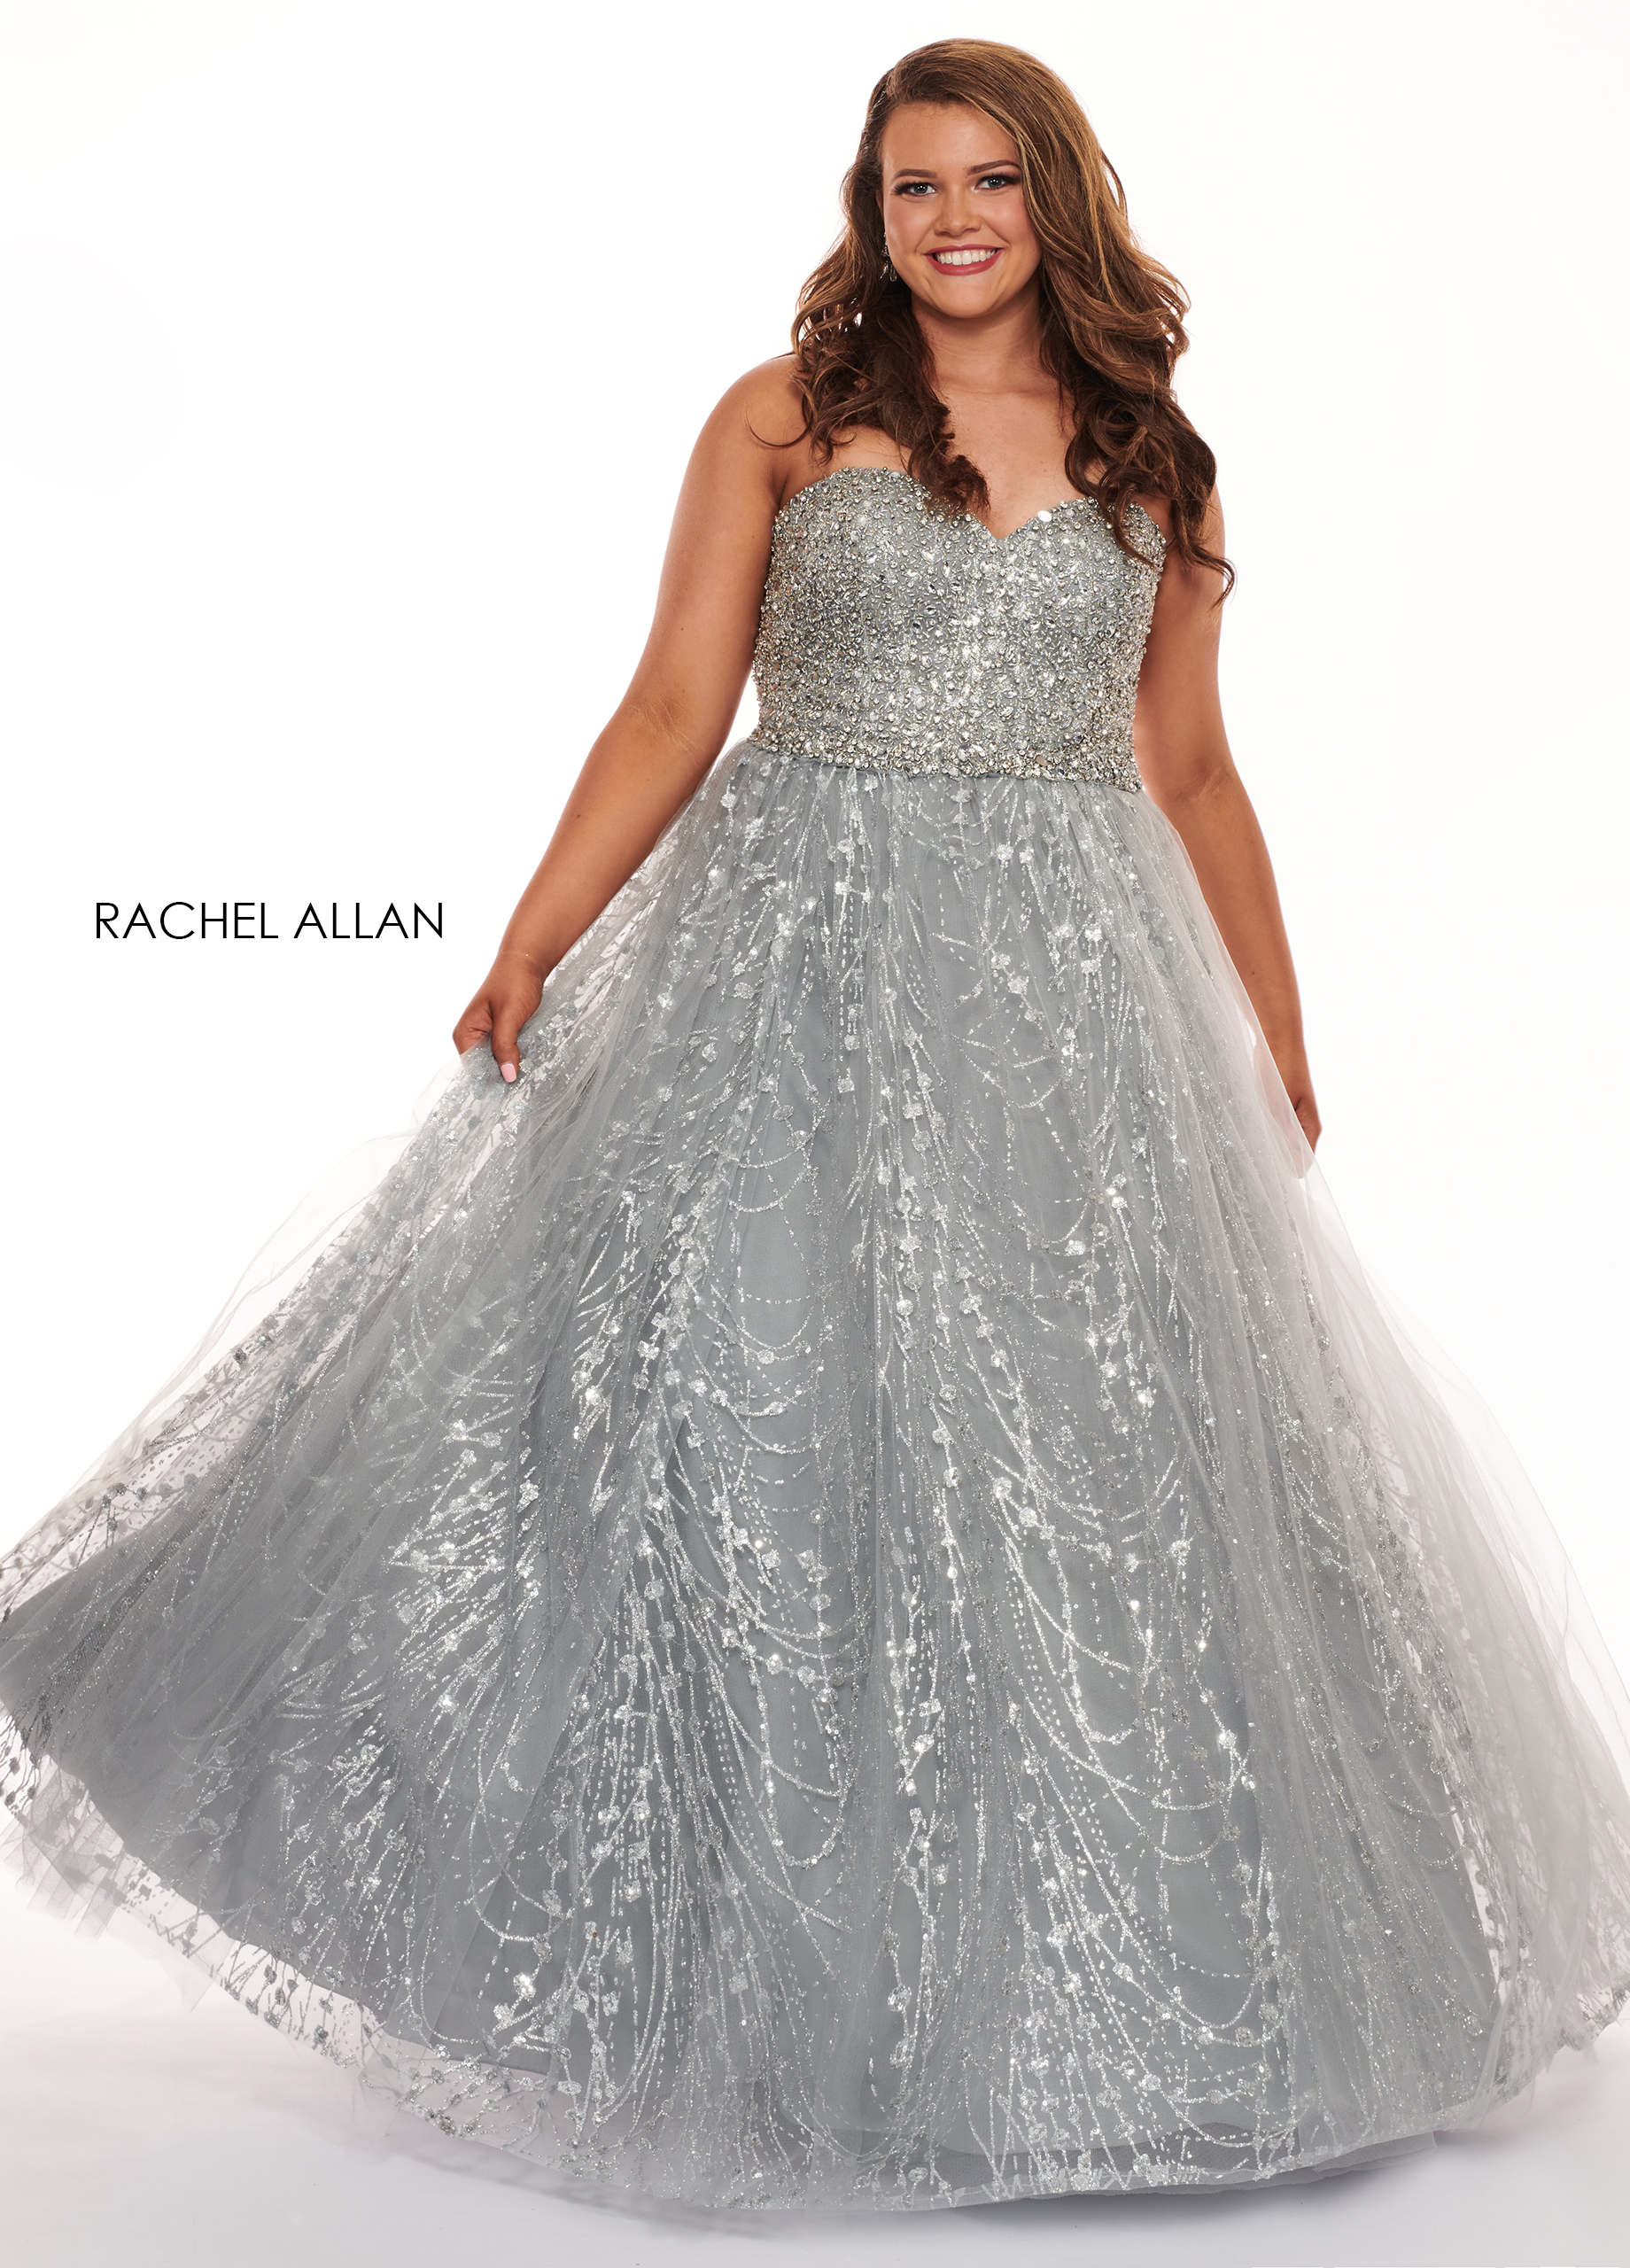 Sweetheart Ball Gowns Plus Size Dresses in Grey Color